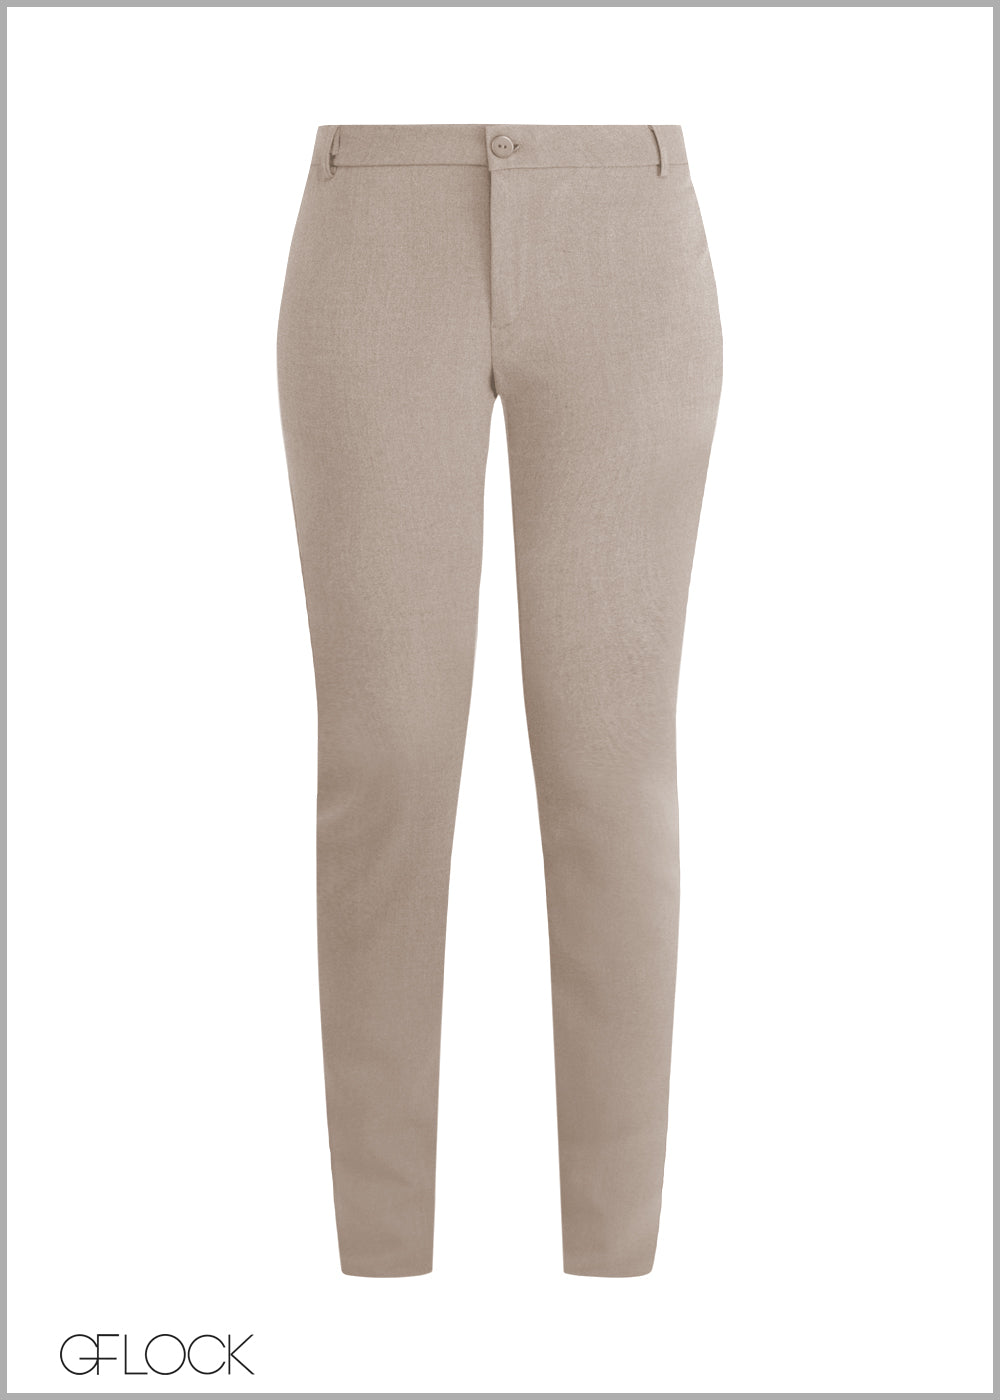 Sleek Workwear Pant